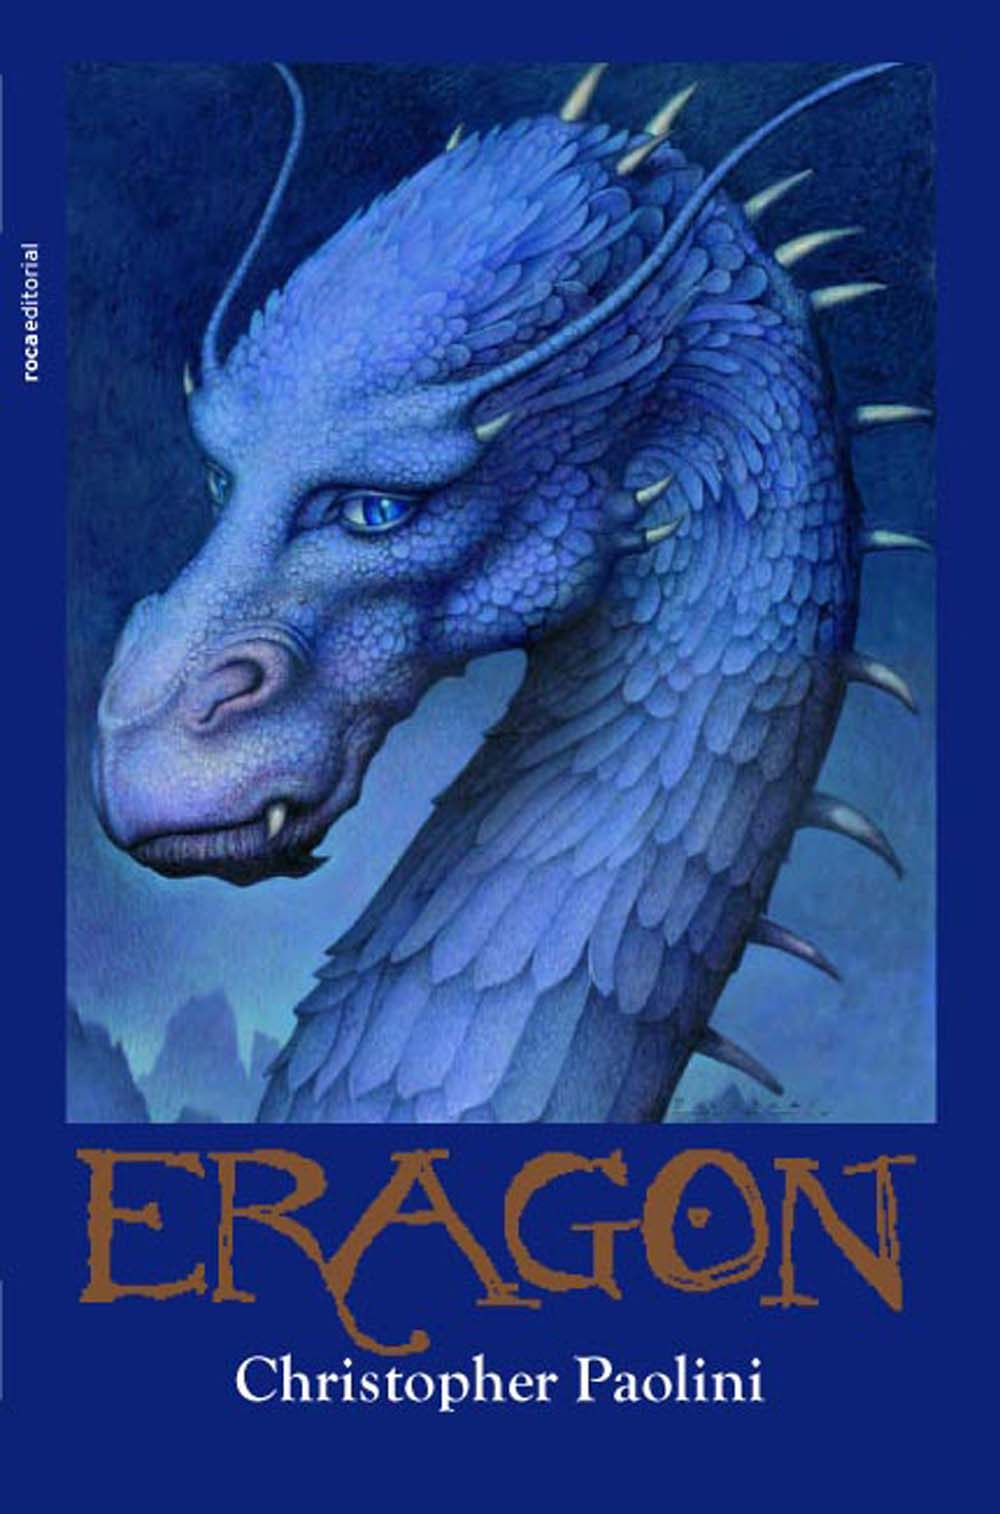 Christopher Paolini is the youngest best-selling author 81